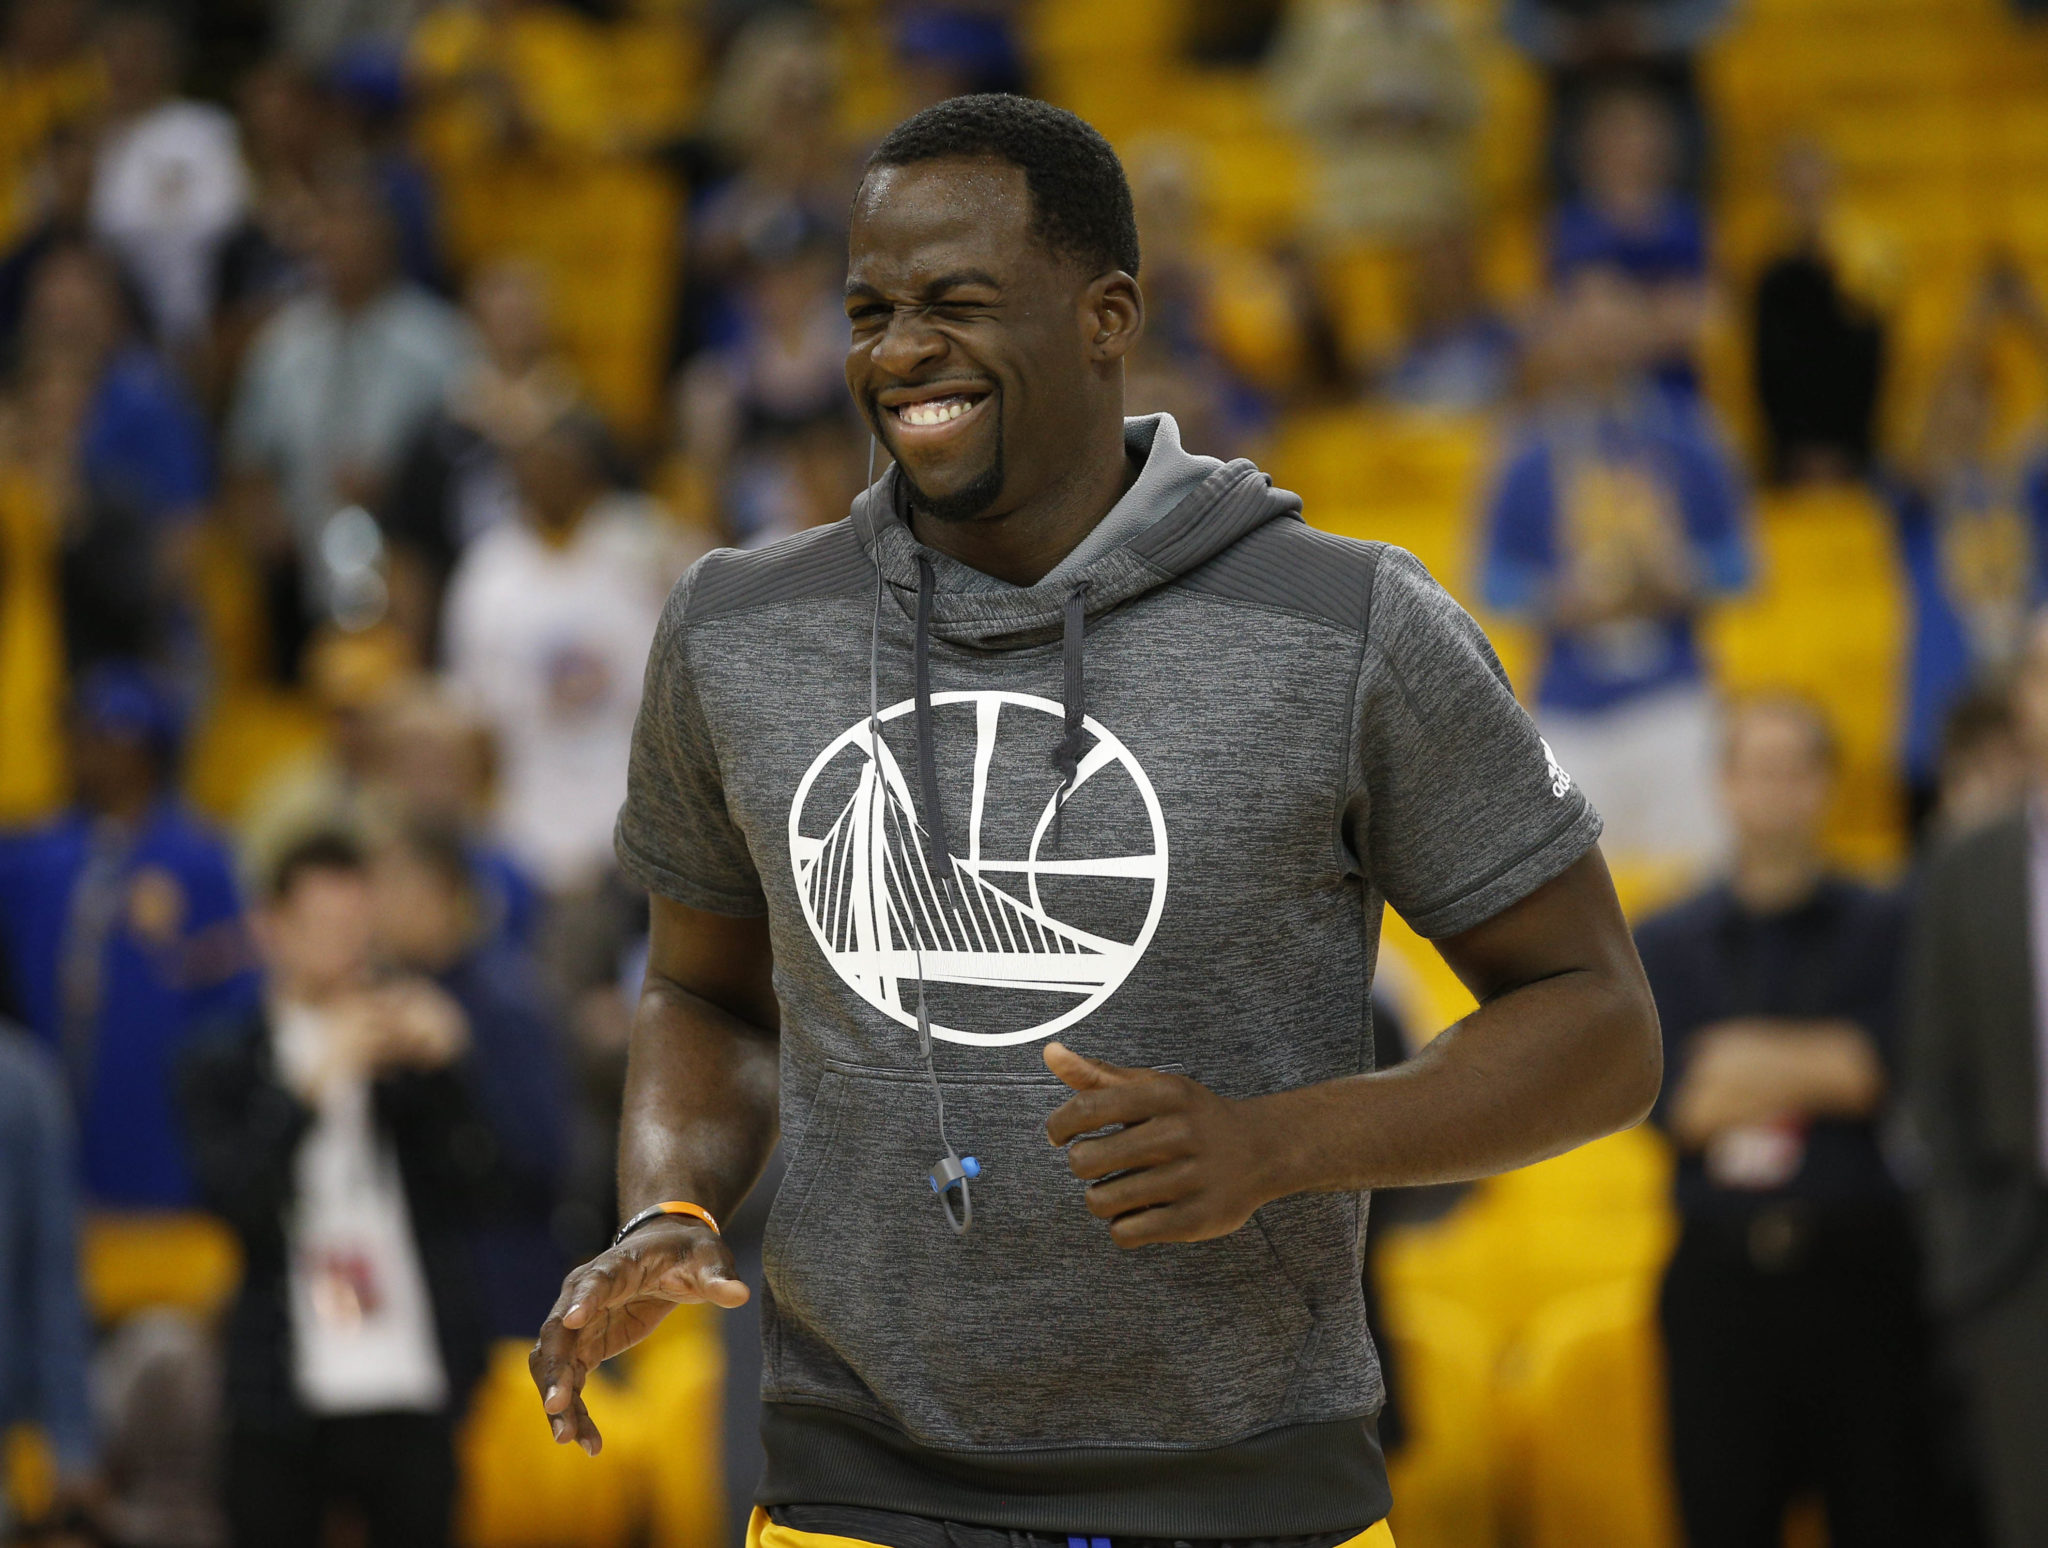 Magic Johnson subpoenaed as witness in Draymond Green lawsuit